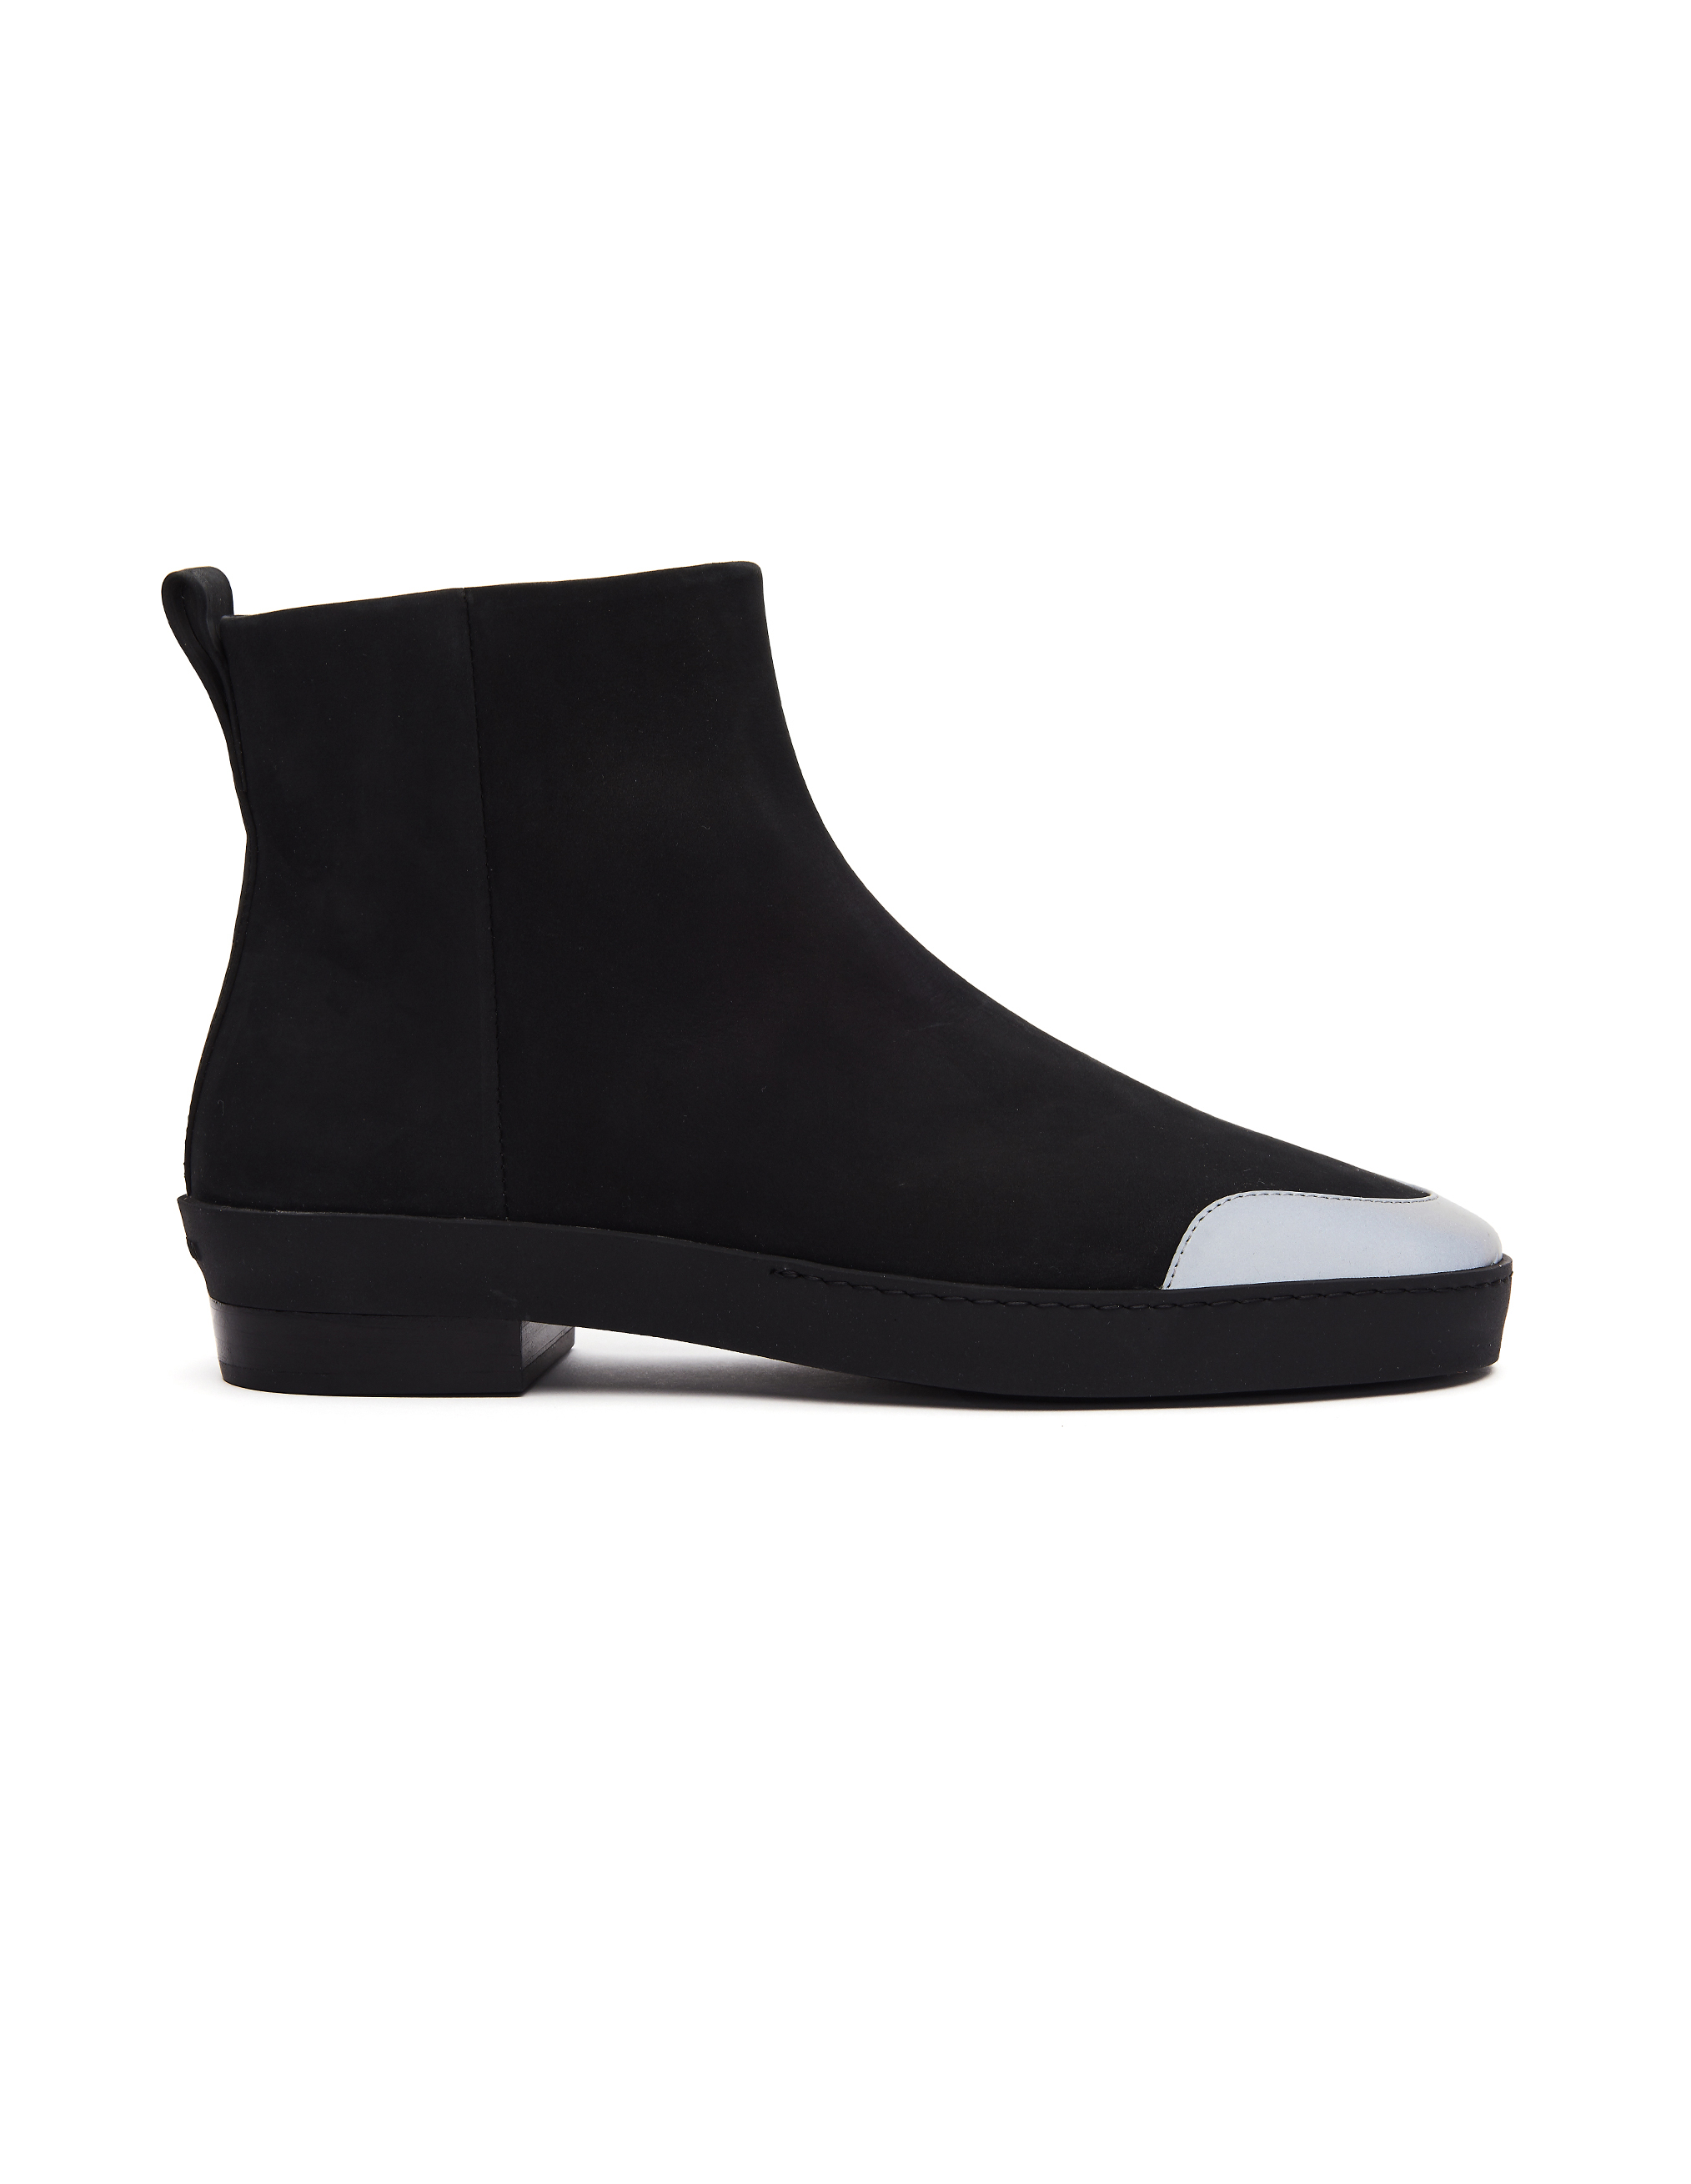 Fear of God Black Leather Chelsea Boots